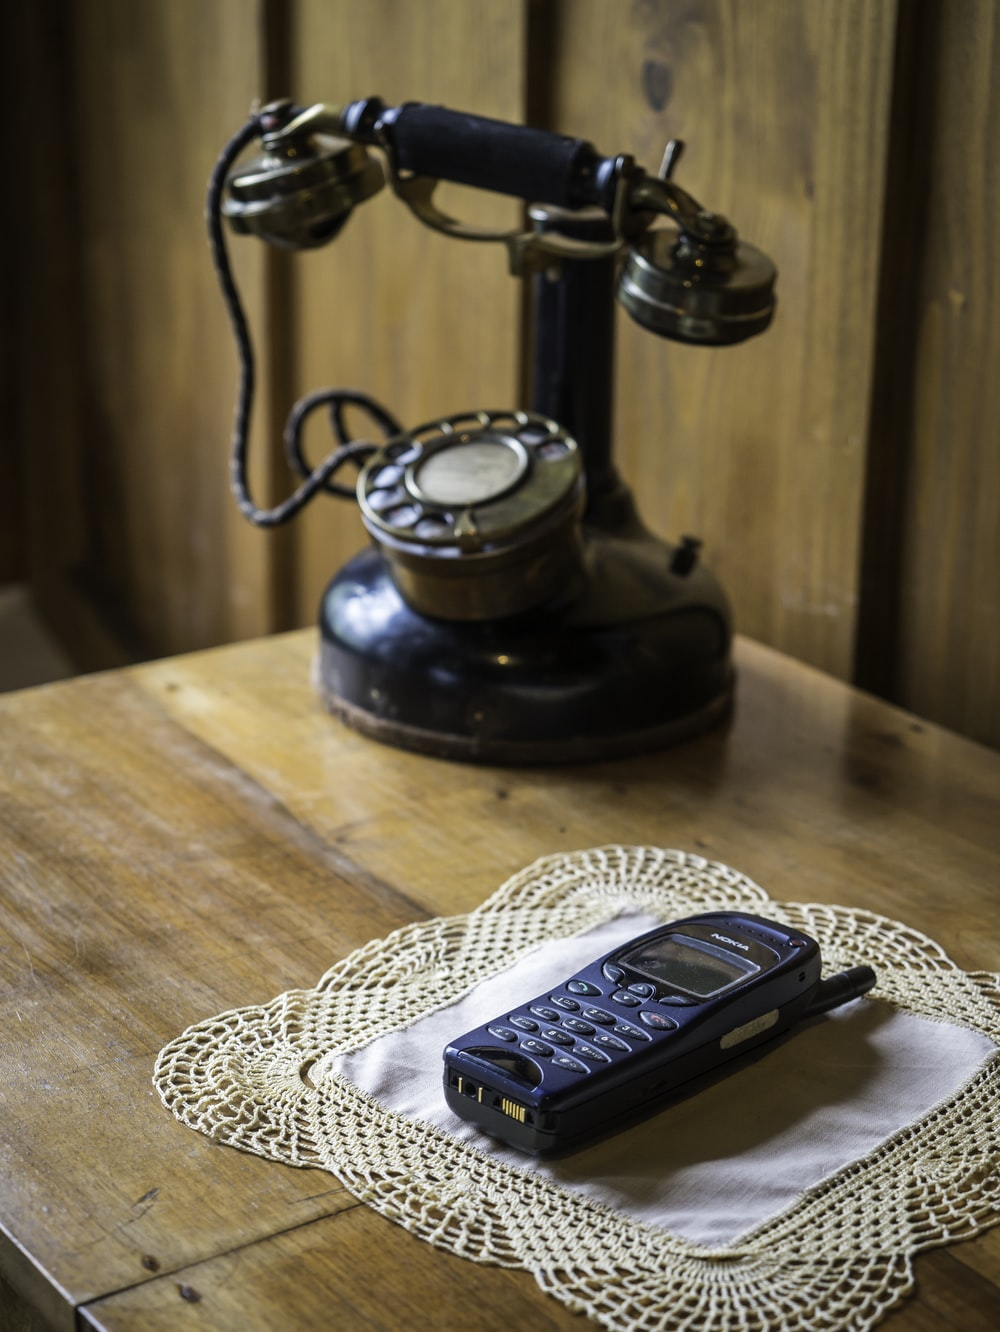 black and silver desk phone on white knit table mat